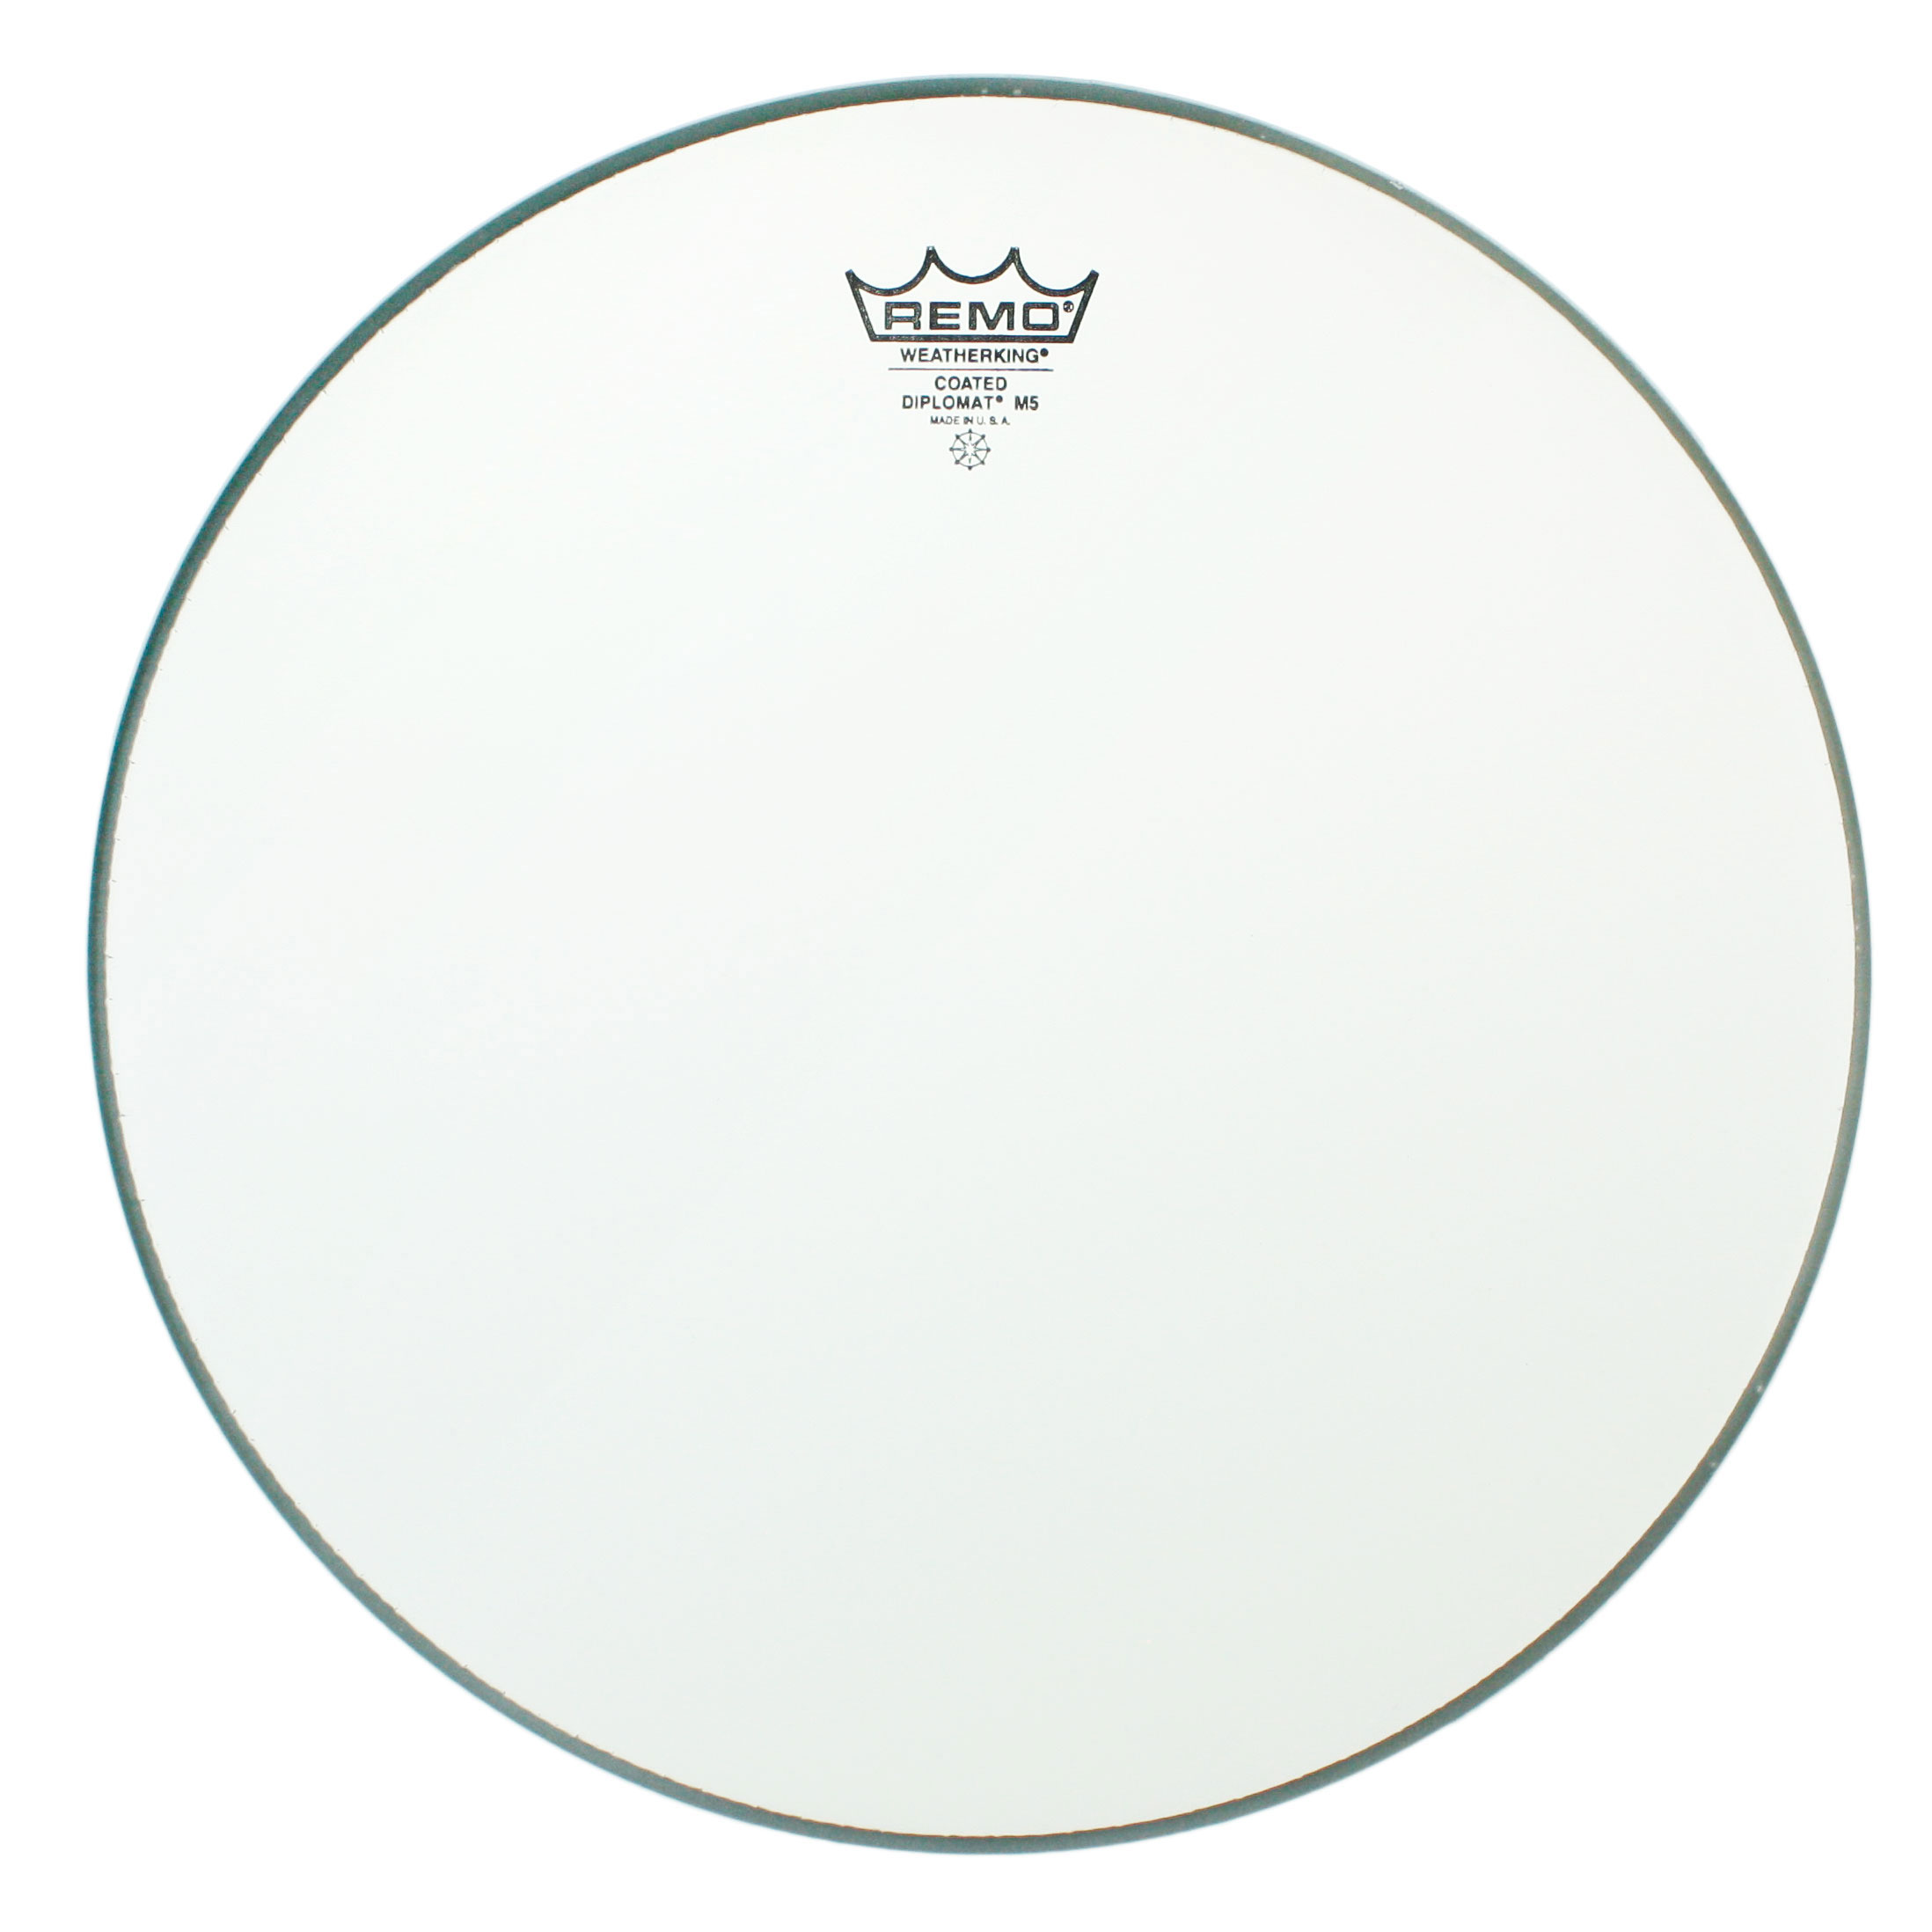 "Remo 13"" Diplomat Coated M5 Thin Concert Snare Drum Head"